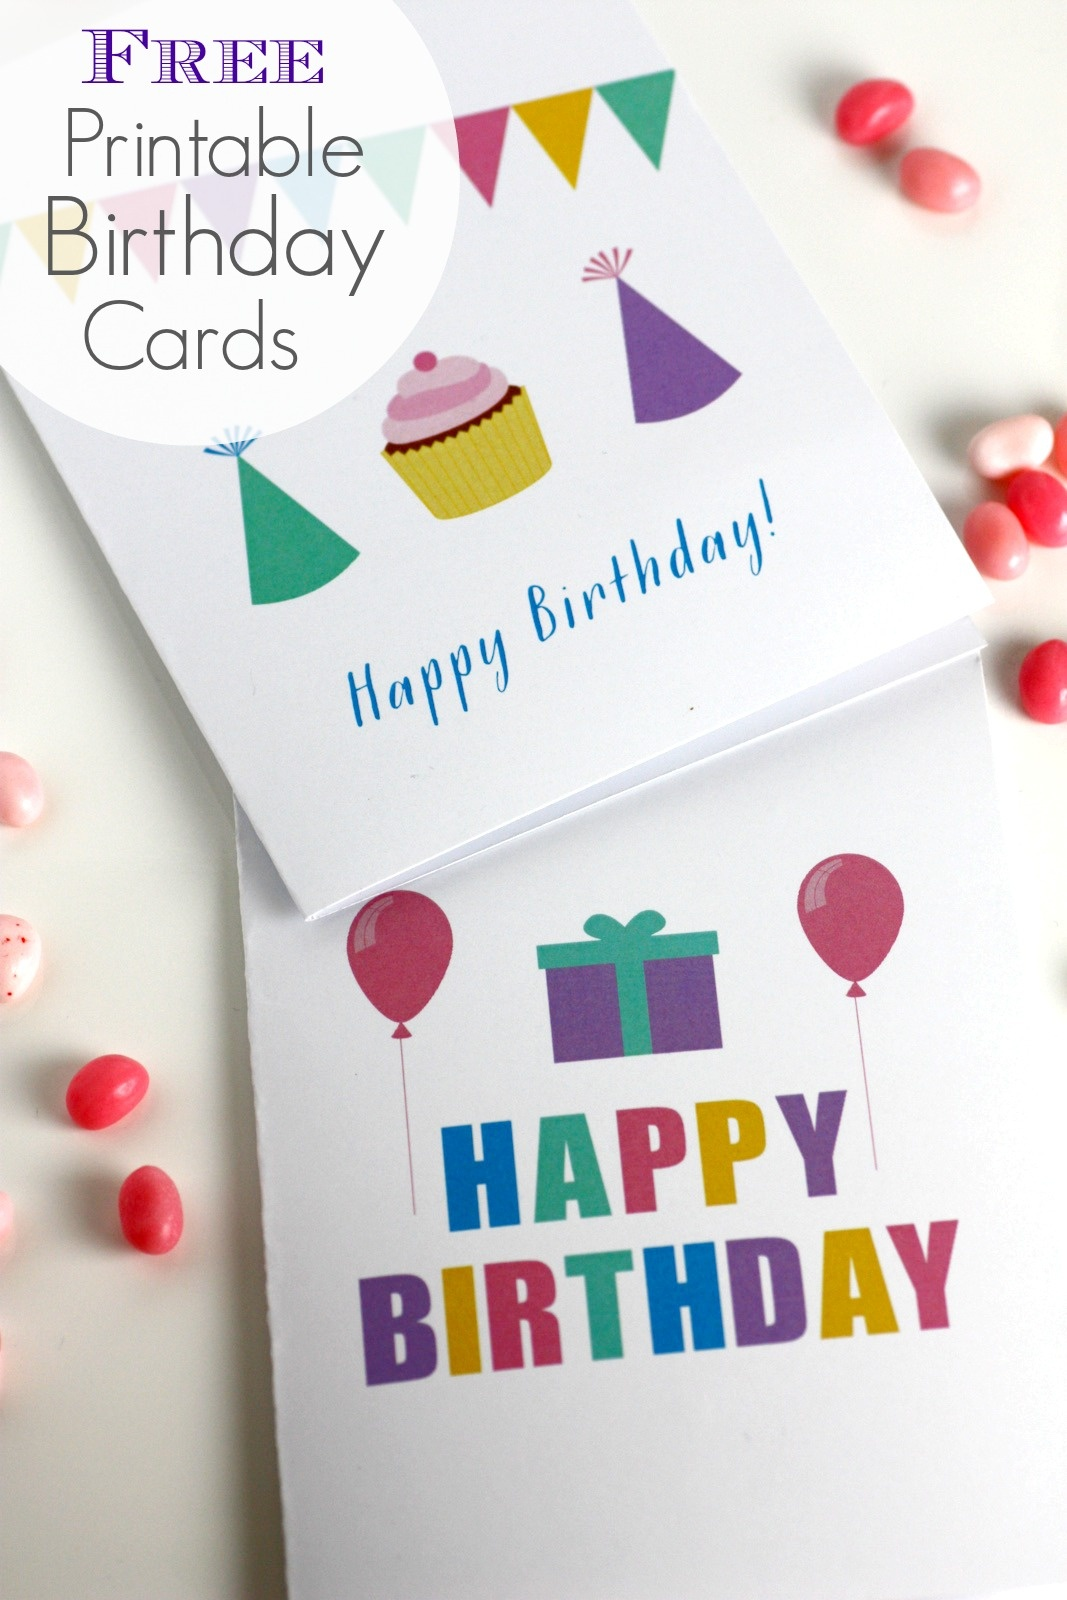 Free Printable Blank Birthday Cards   Catch My Party - Free Printable Greeting Cards